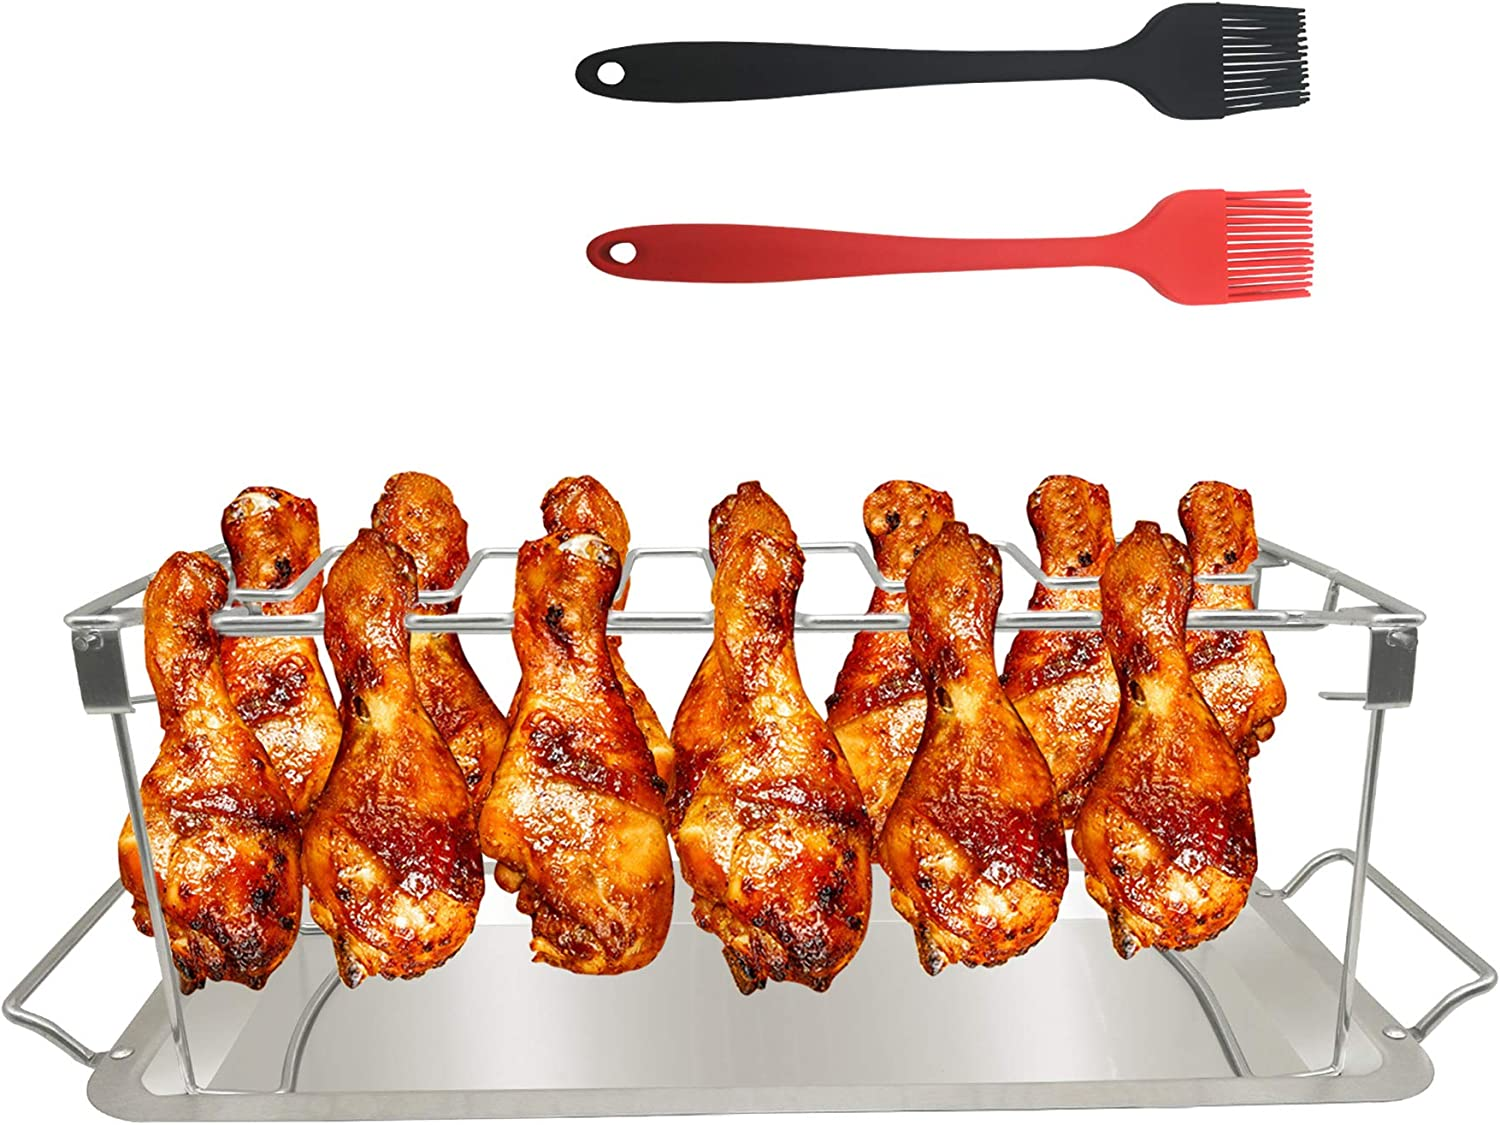 BBQ Beef Chicken Leg Wing Grill Rack 14 Slots Stainless Steel Barbecue Drumsticks Holder Smoker Oven Roaster Stand with Drip Pan and Brush Stainless Steel Roaster Stand BBQ Chicken Rack